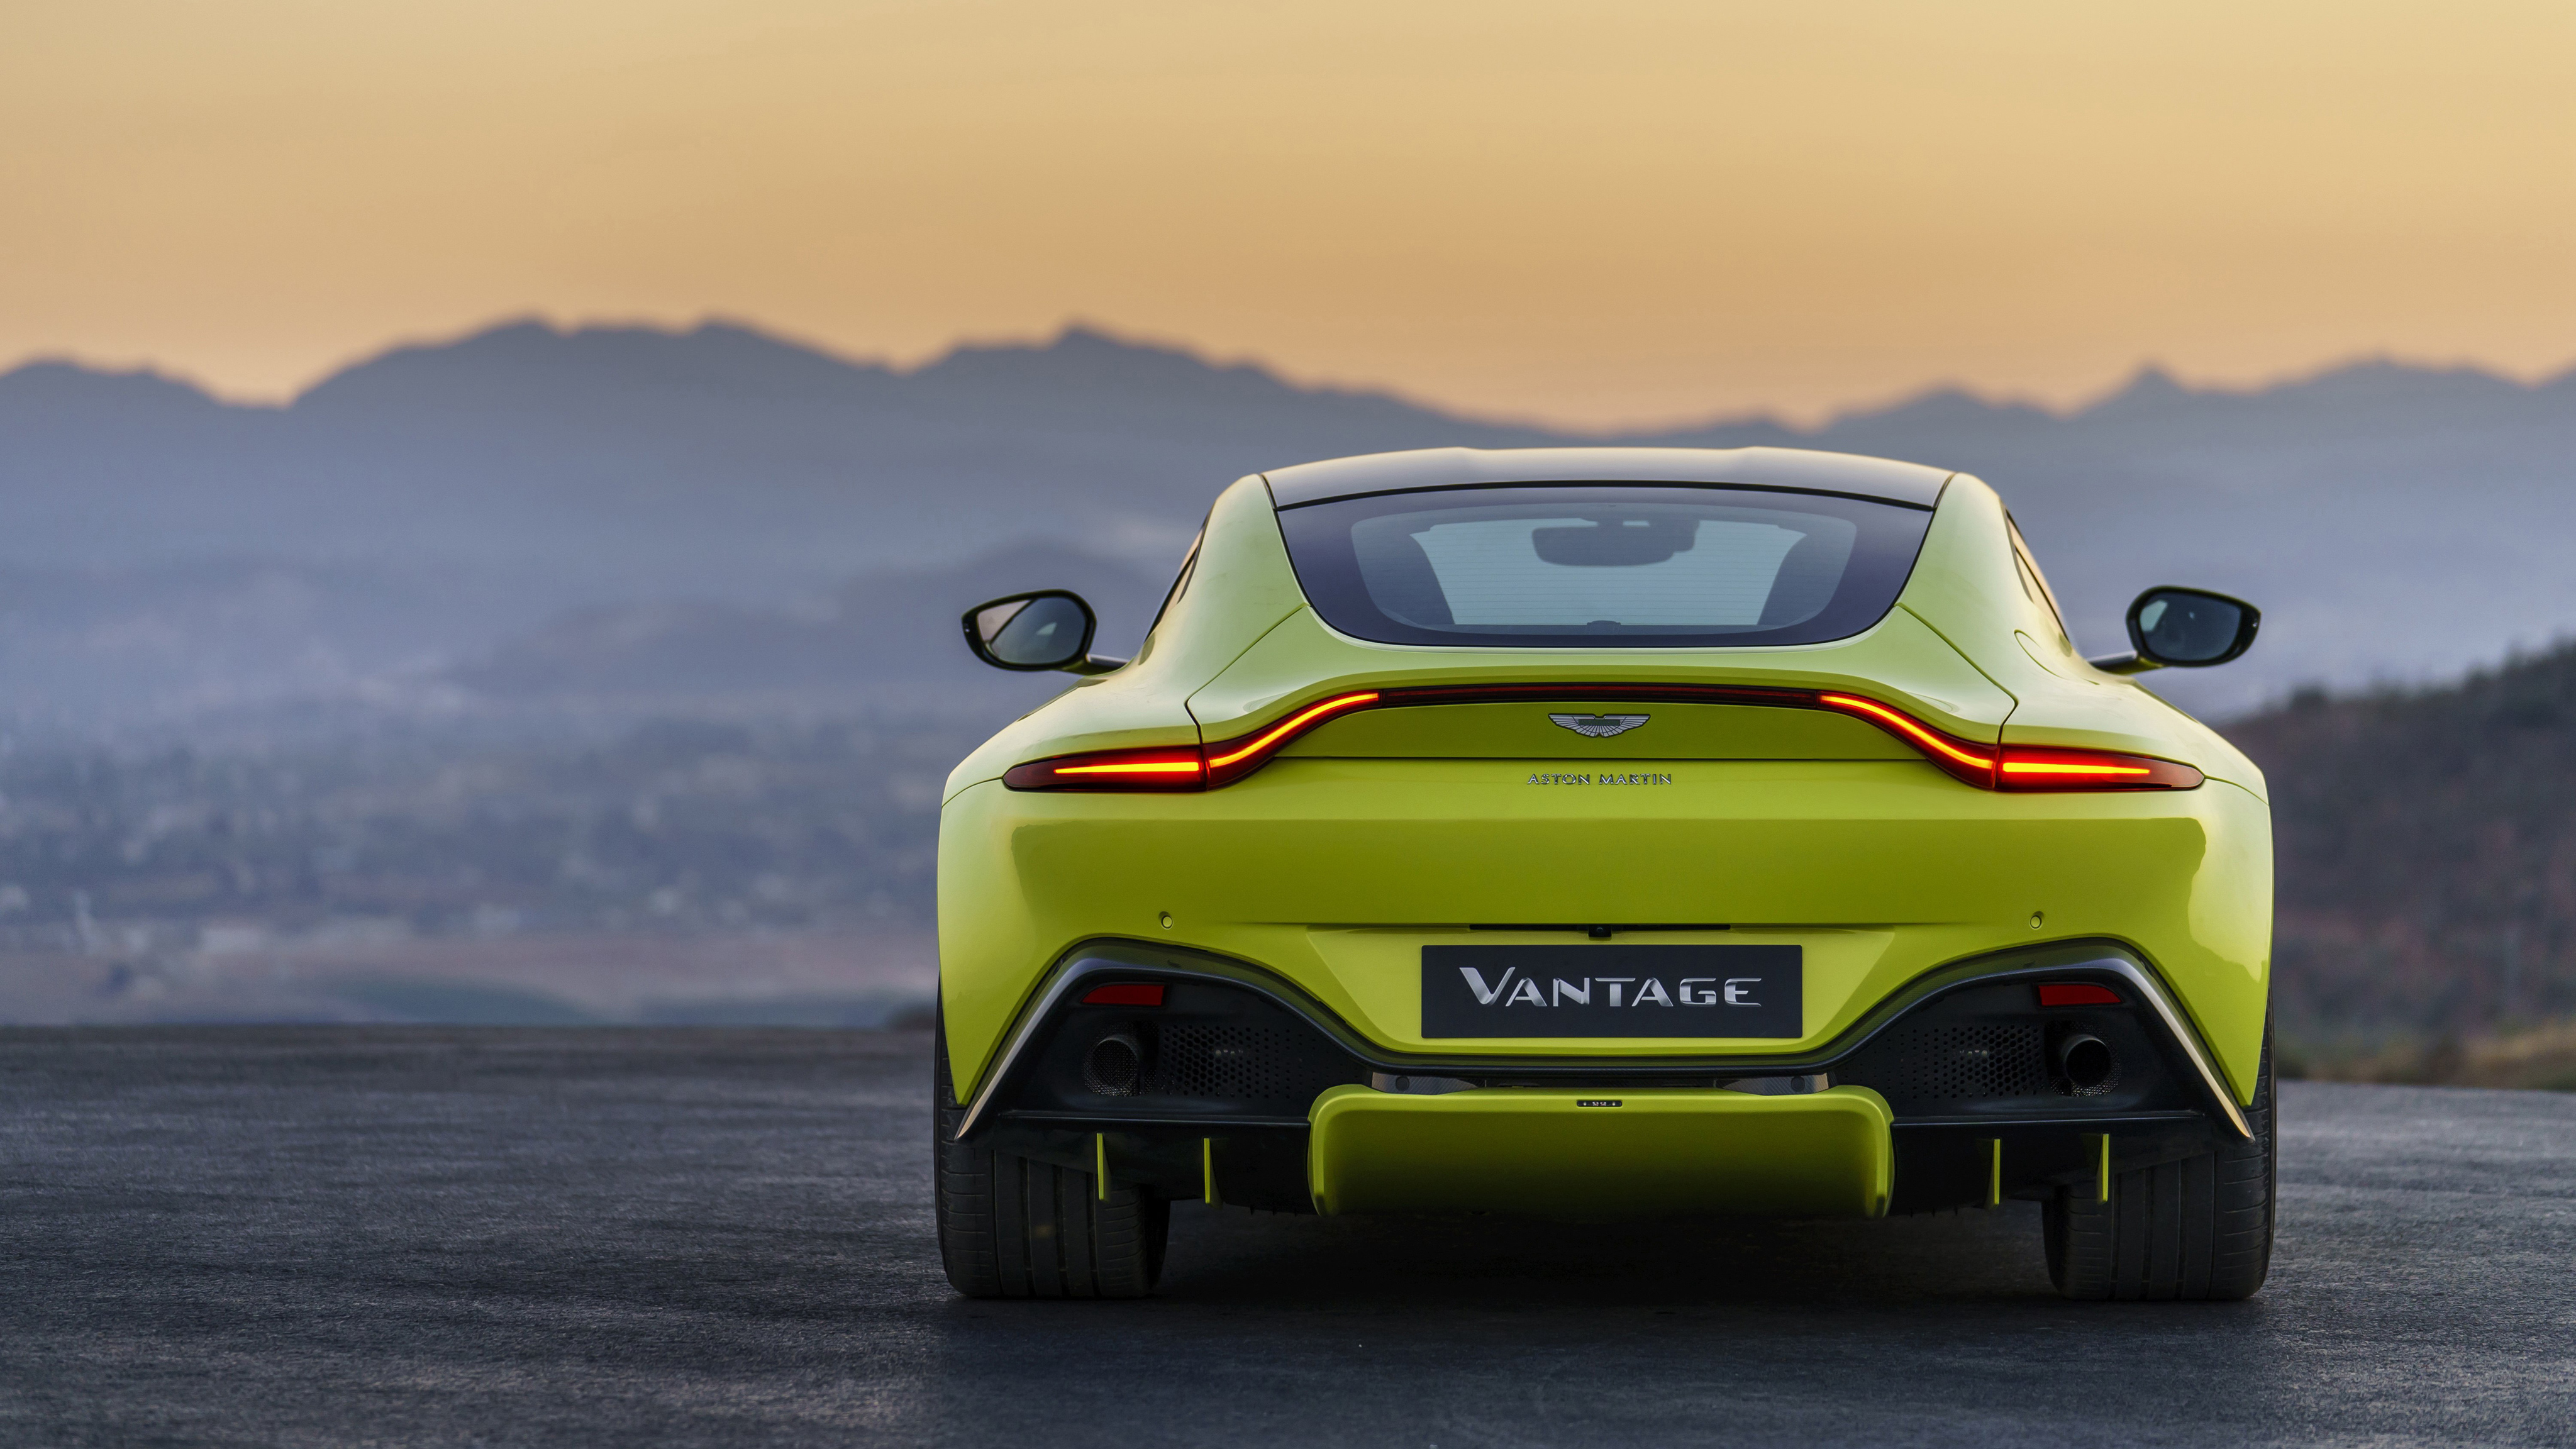 Aston Martin Vantage Wallpapers and Background Images   stmednet 4096x2304